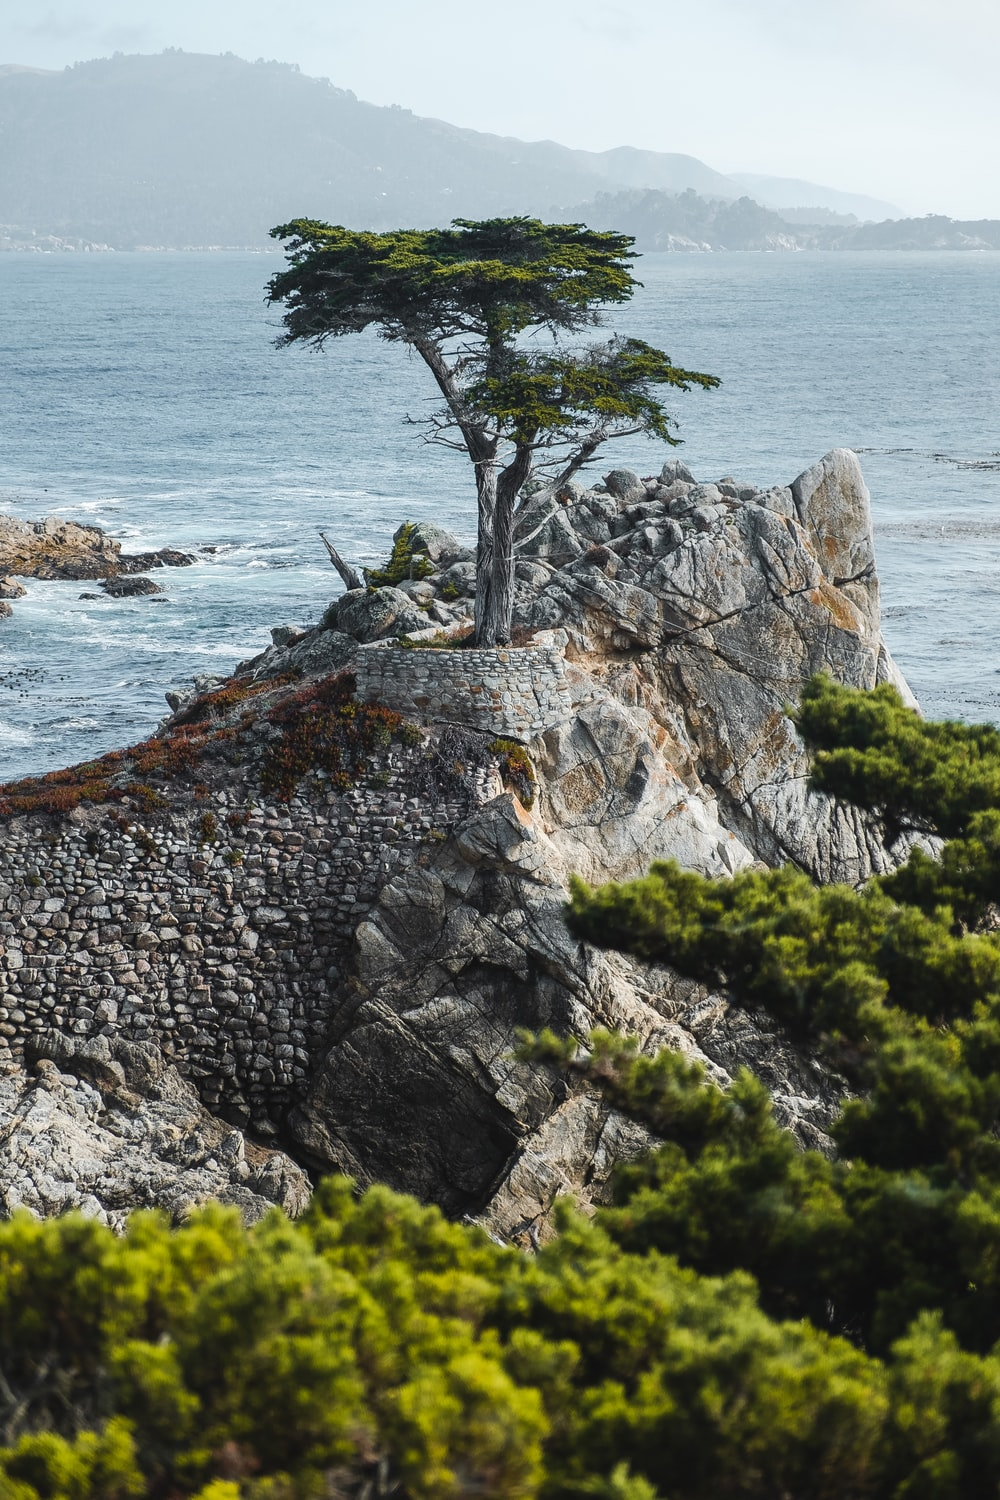 green tree on top of sea cliff during daytime